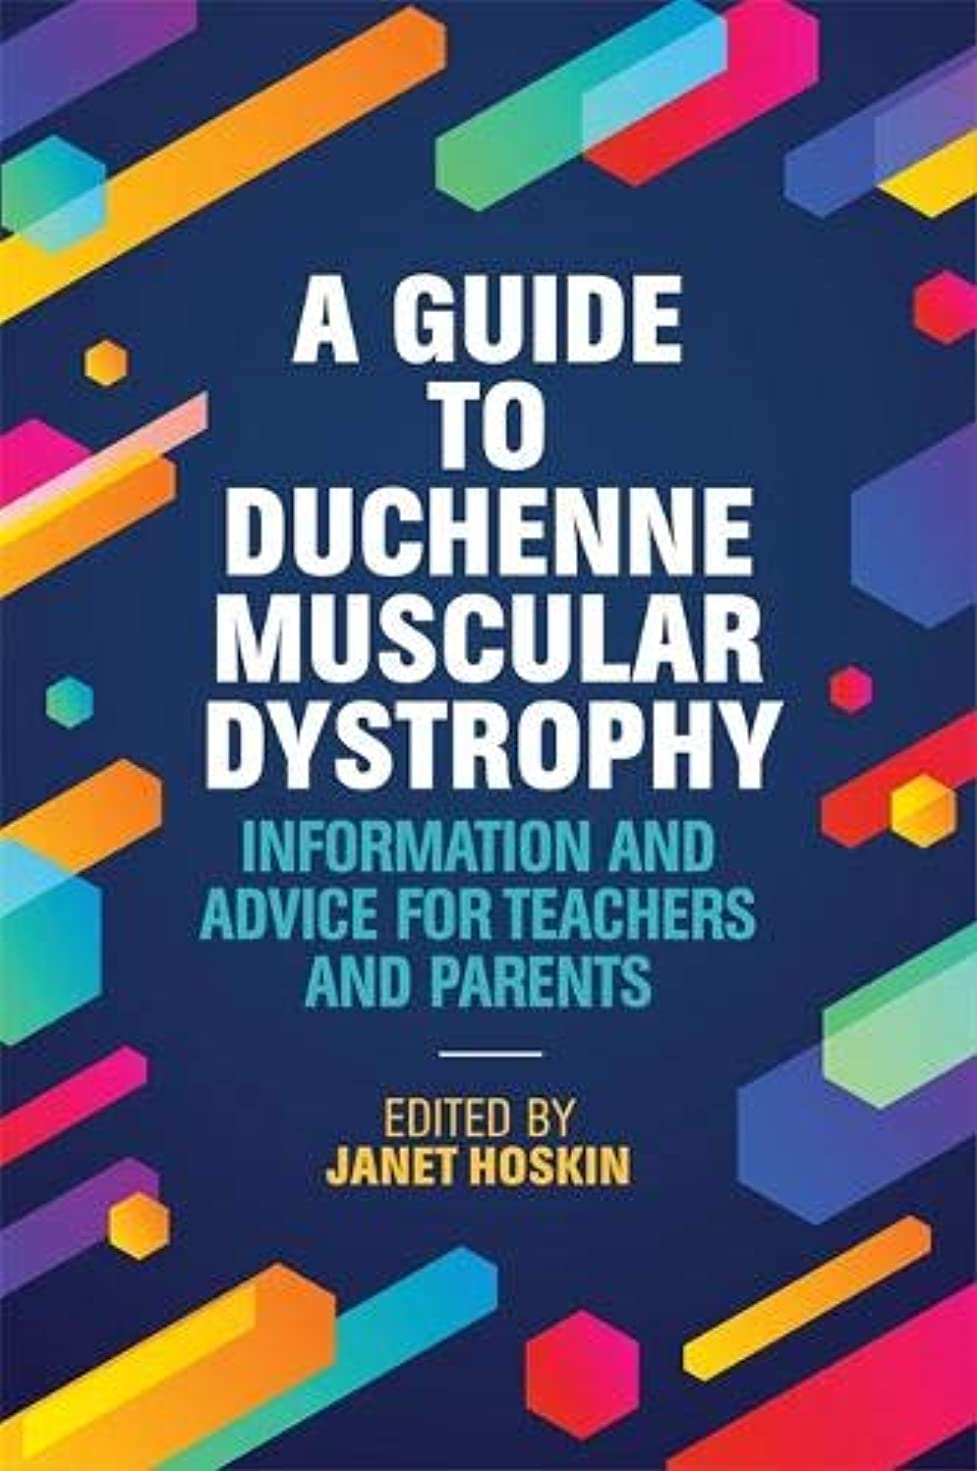 押す最大のポーズA Guide to Duchenne Muscular Dystrophy: Information and Advice for Teachers and Parents